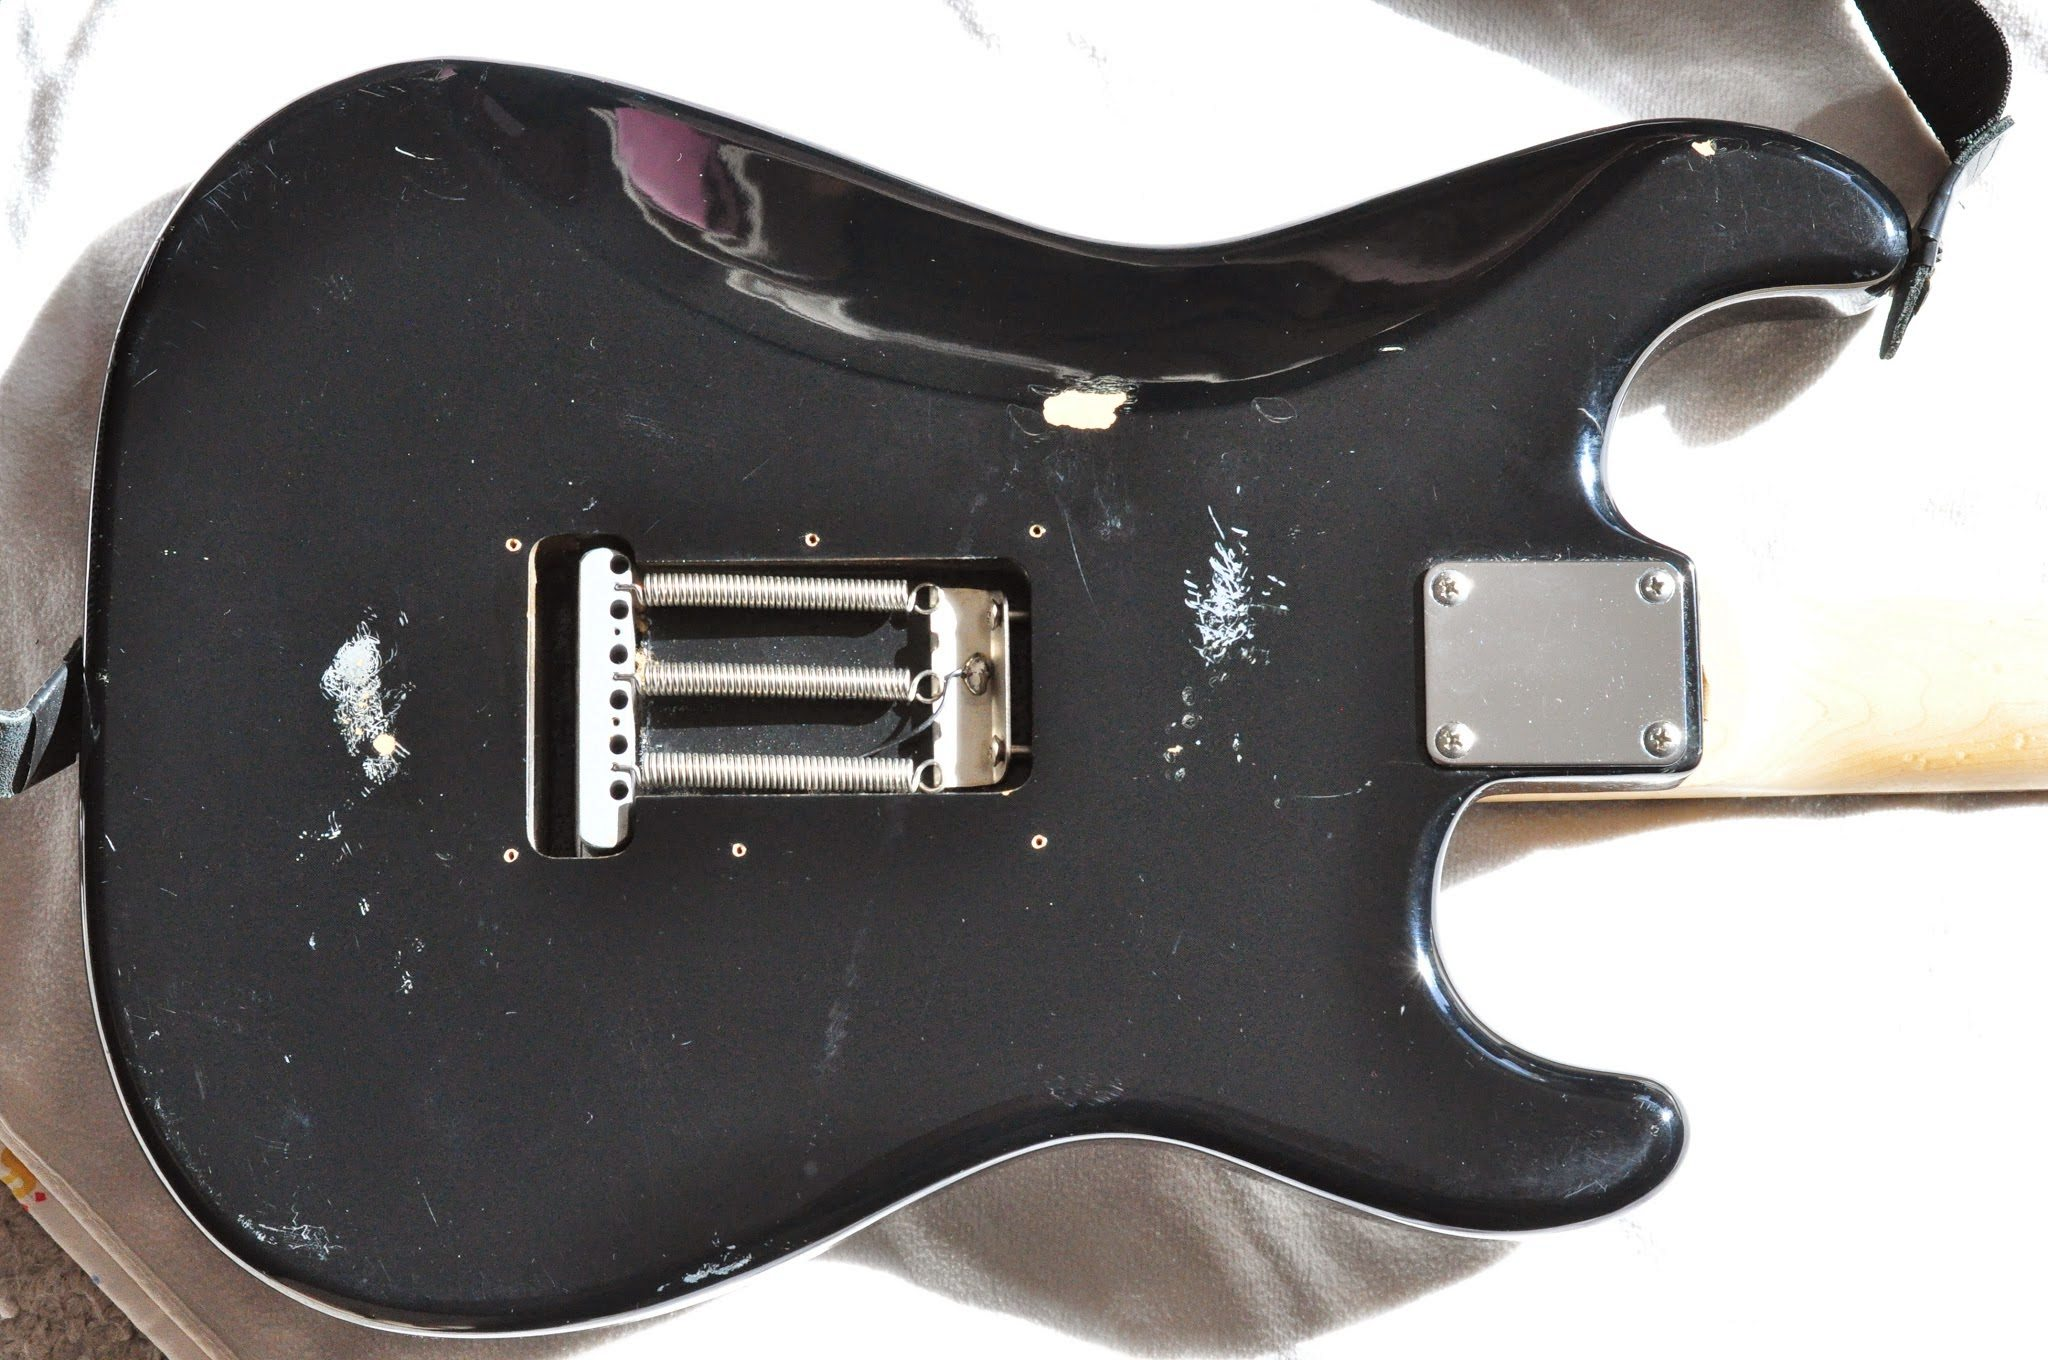 Mexican Made Fender Guitars